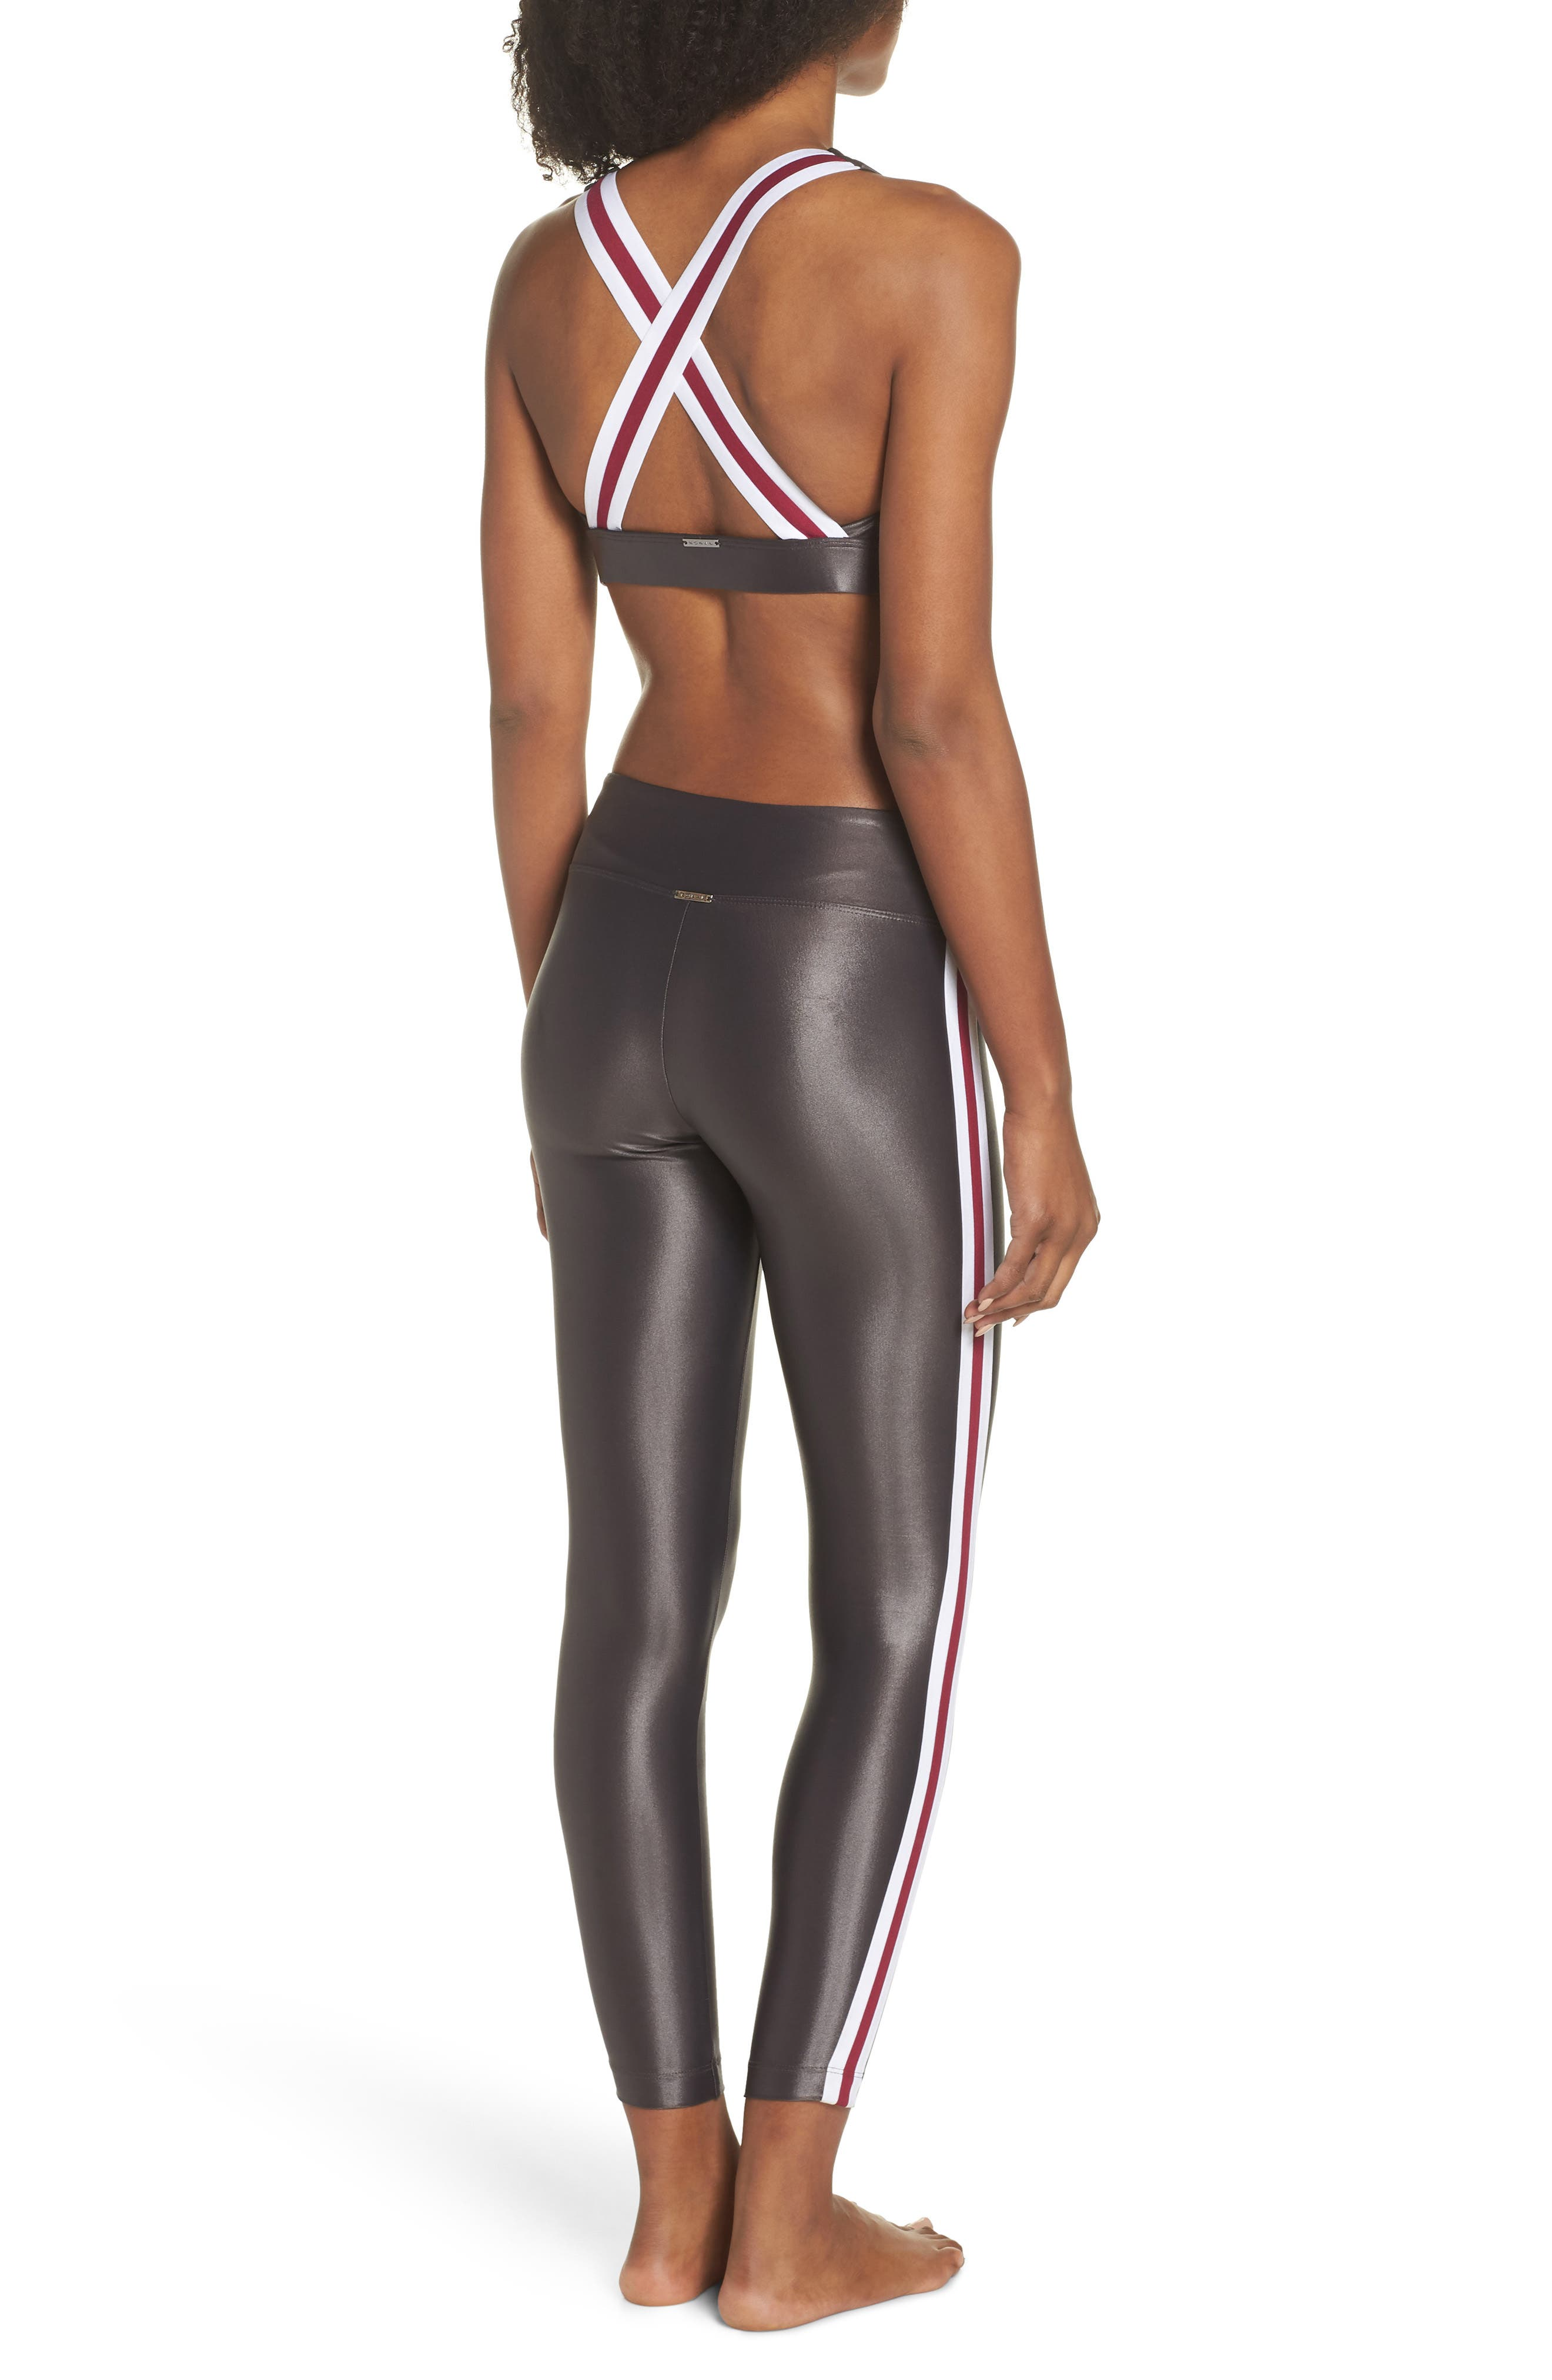 Fame Sports Bra,                             Alternate thumbnail 9, color,                             LEAD